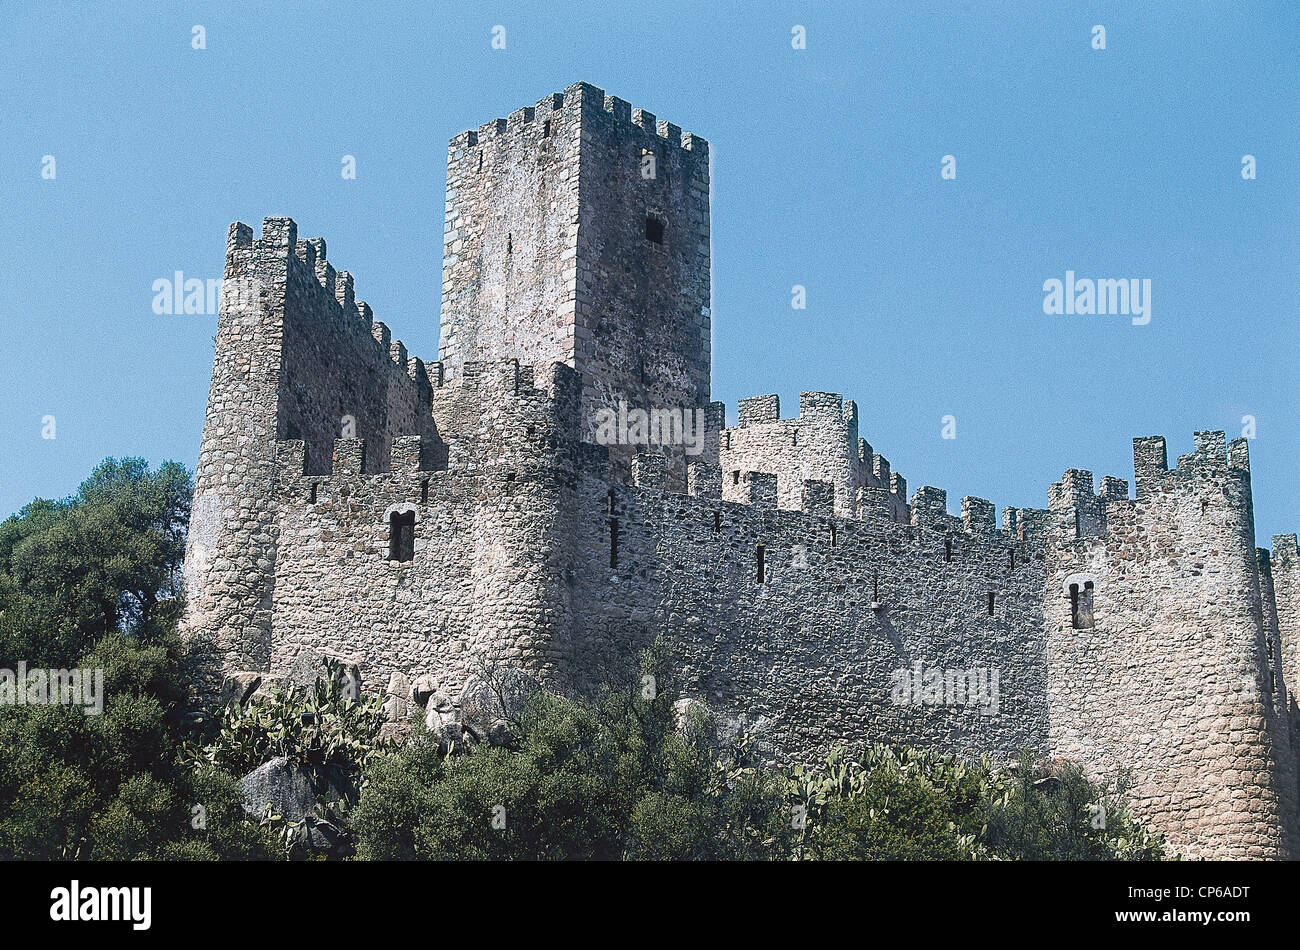 PORTUGAL Almourol THE CASTLE OF THE KNIGHTS TEMPLAR XII SEC. - Stock Image